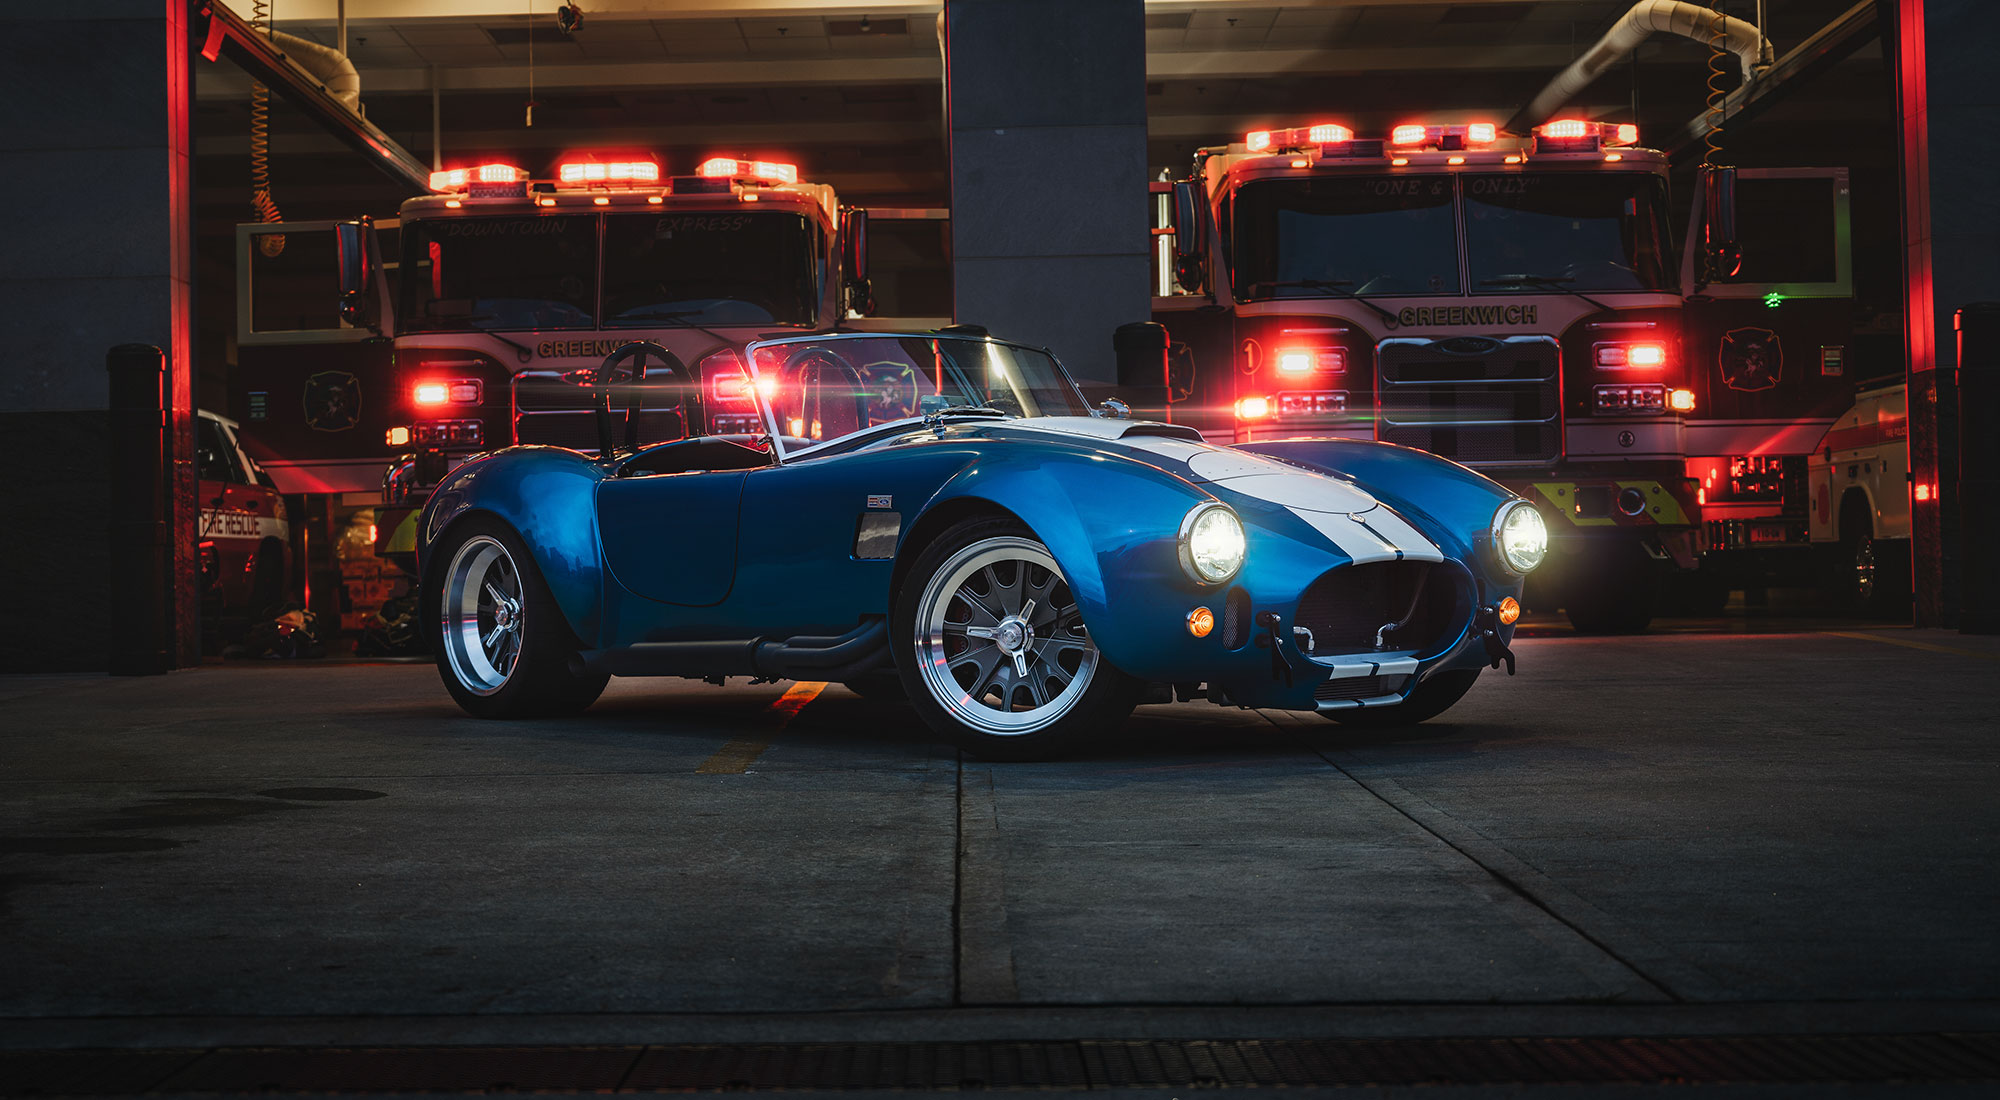 Top 5 tips for shooting a classic car